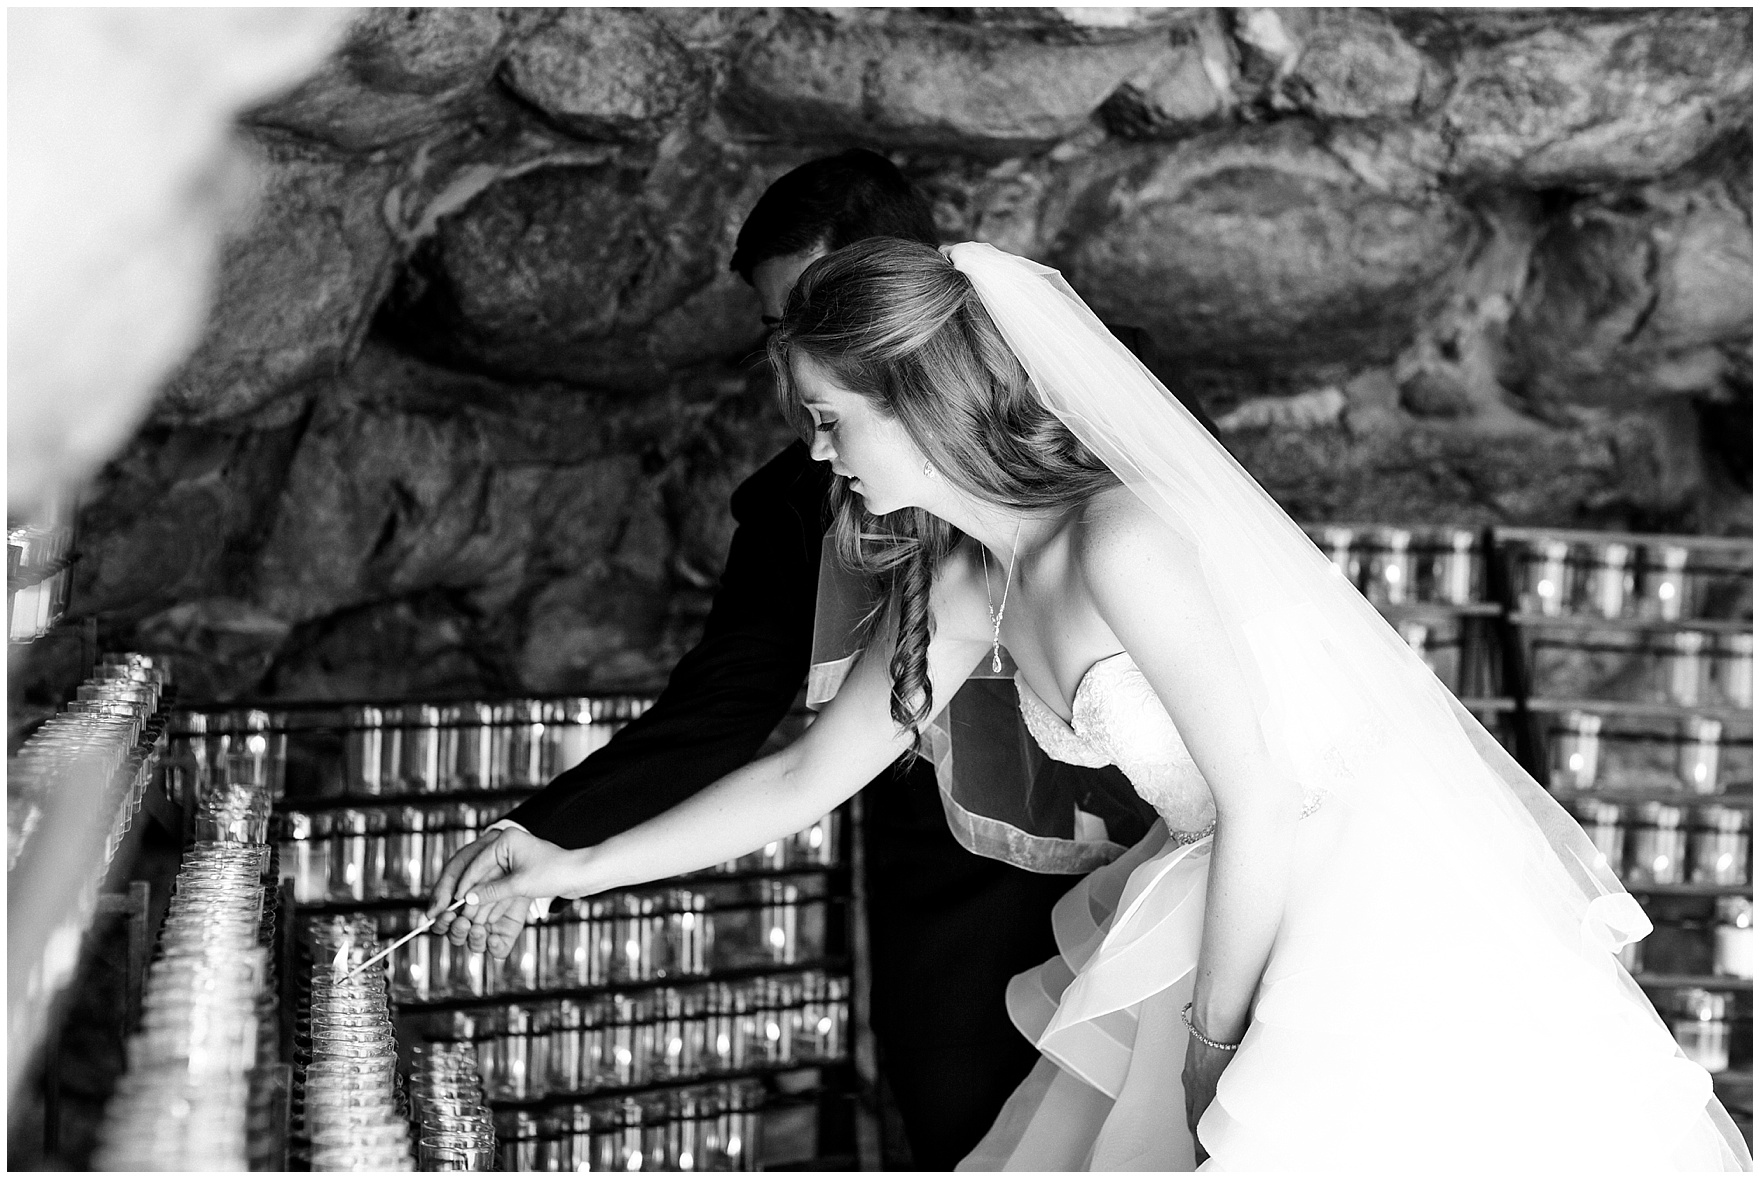 The bride and groom light a candle in the grotto during a University of Notre Dame wedding.